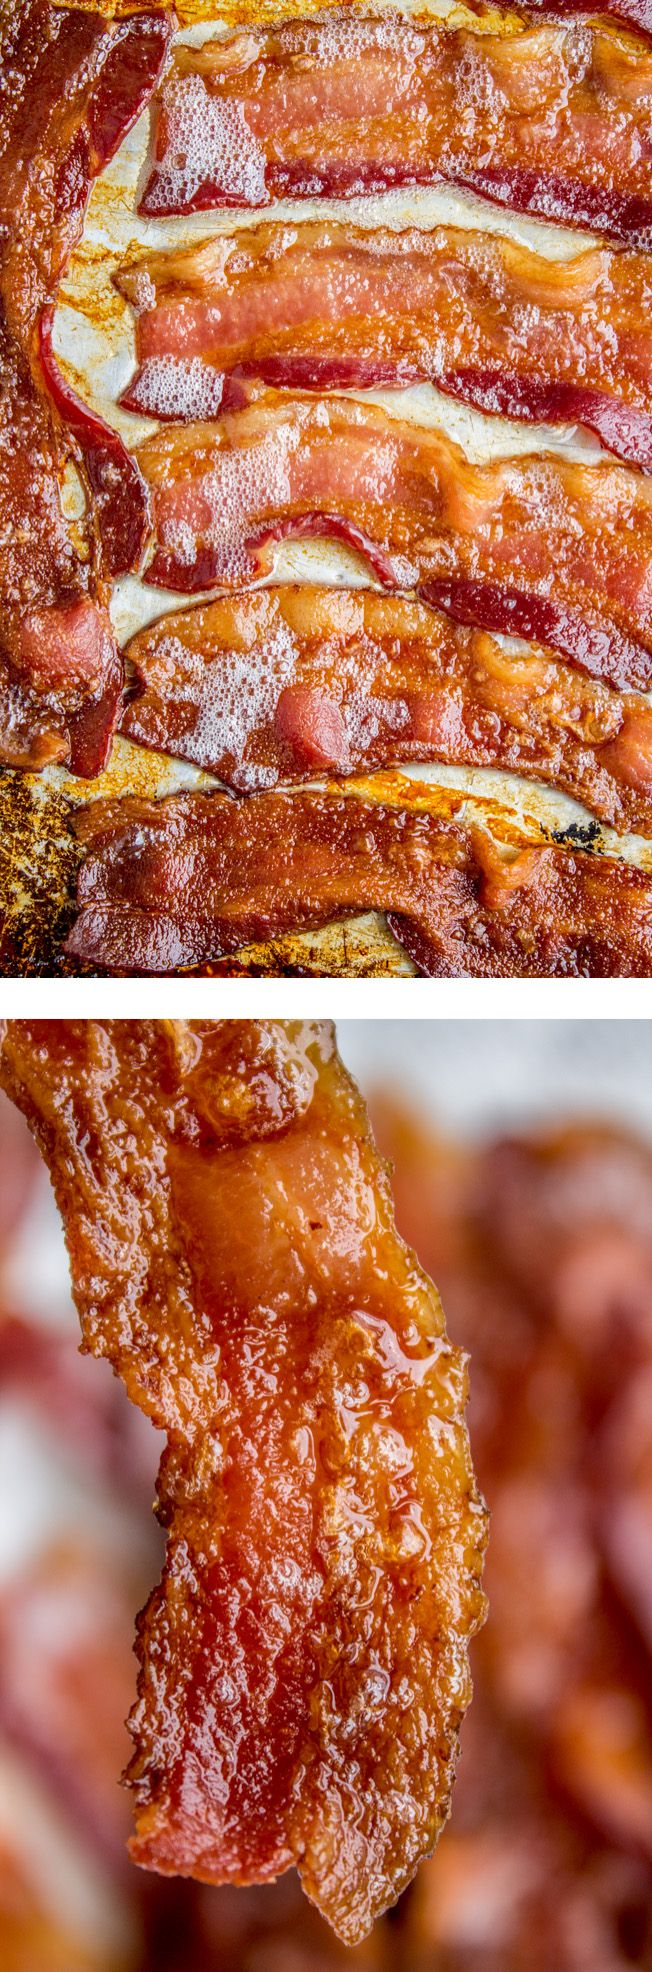 How To Bake Bacon In 10 Minutes